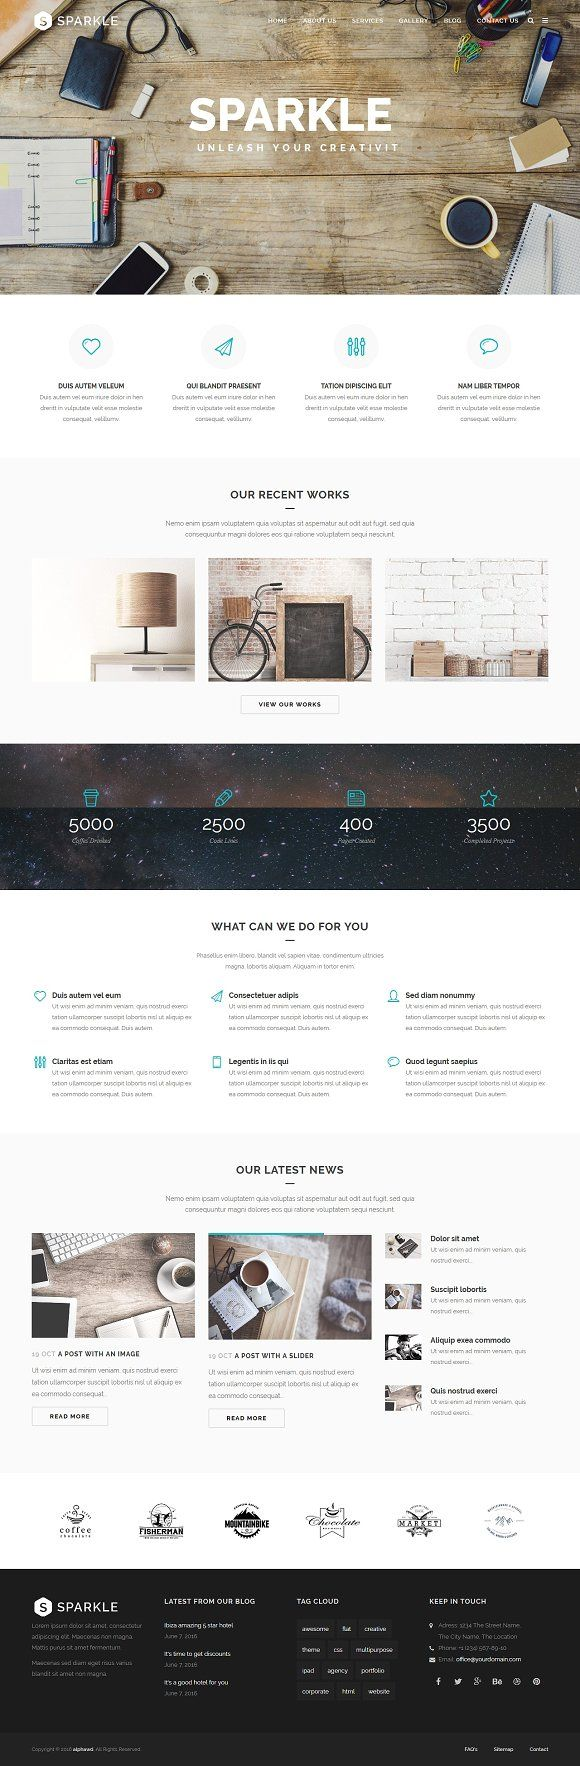 SPARKLE Responsive HTML Template by alphawd on